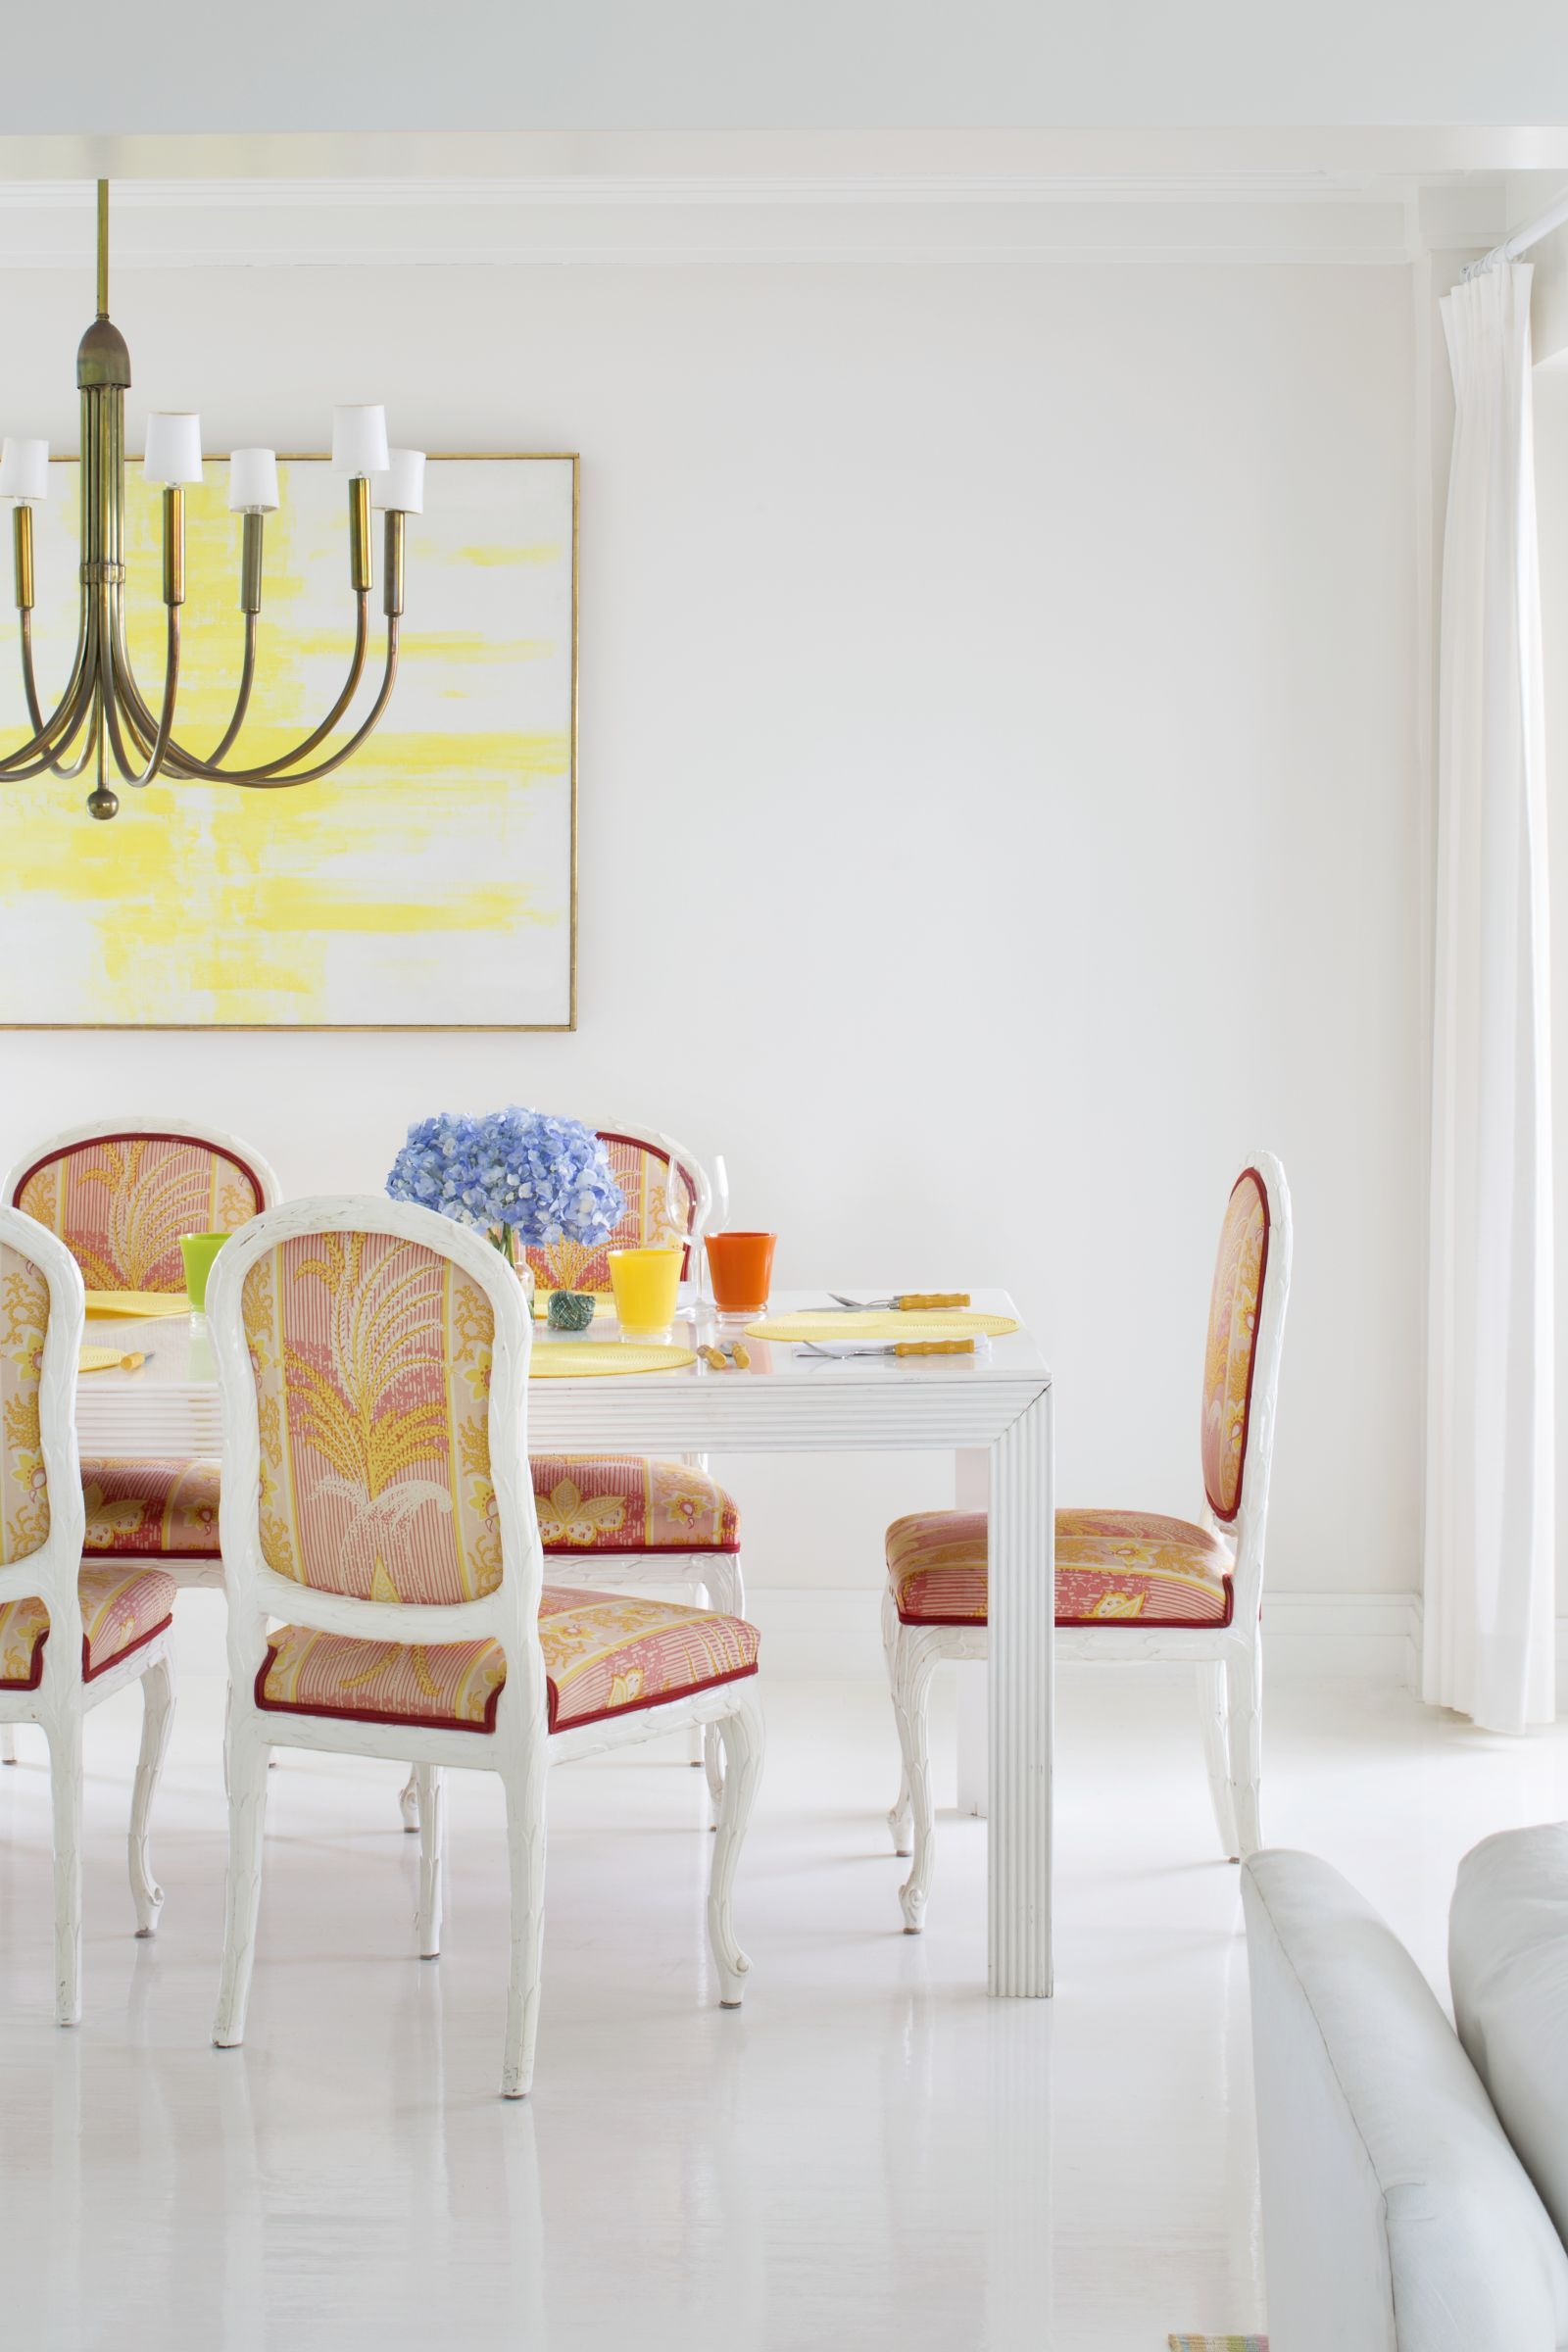 A Look Inside Some Of The Most Whimsical Homes In Palm Beach Dining RoomDining RoomsBeach ApartmentsColor OffFlorida StyleWest